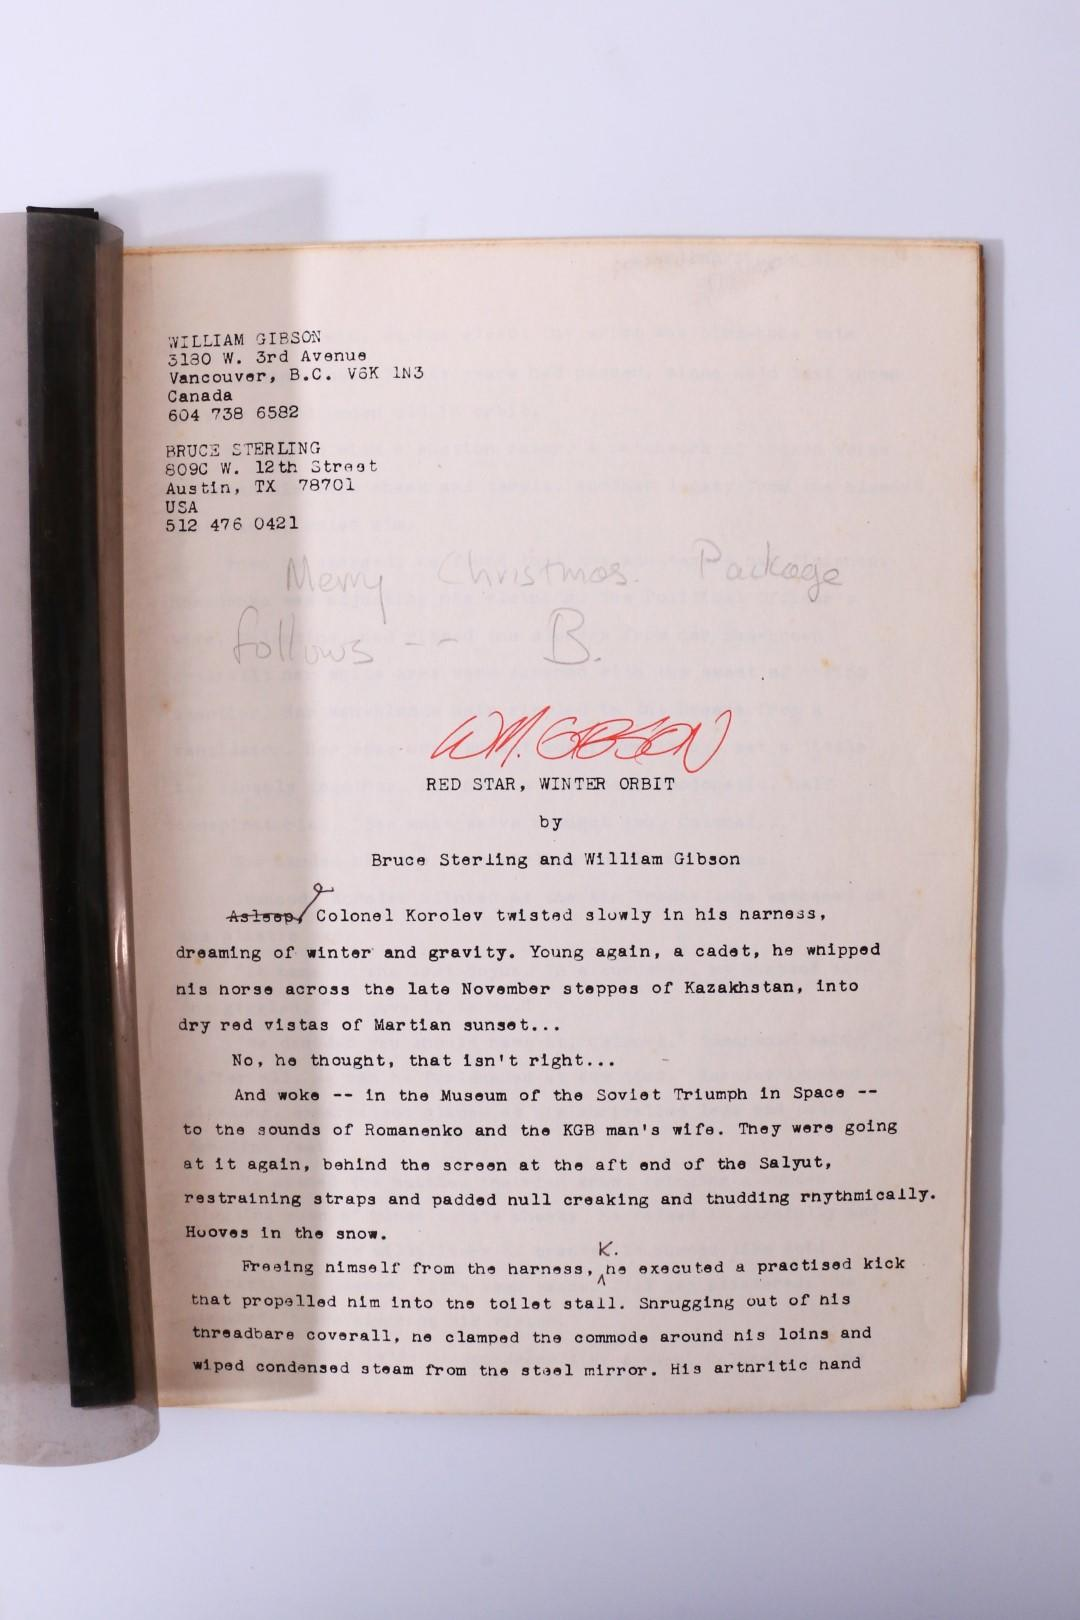 William Gibson & Bruce Sterling - Red Star, Winter Orbit - Typescript - , n.d. [c1983], Manuscript. Signed